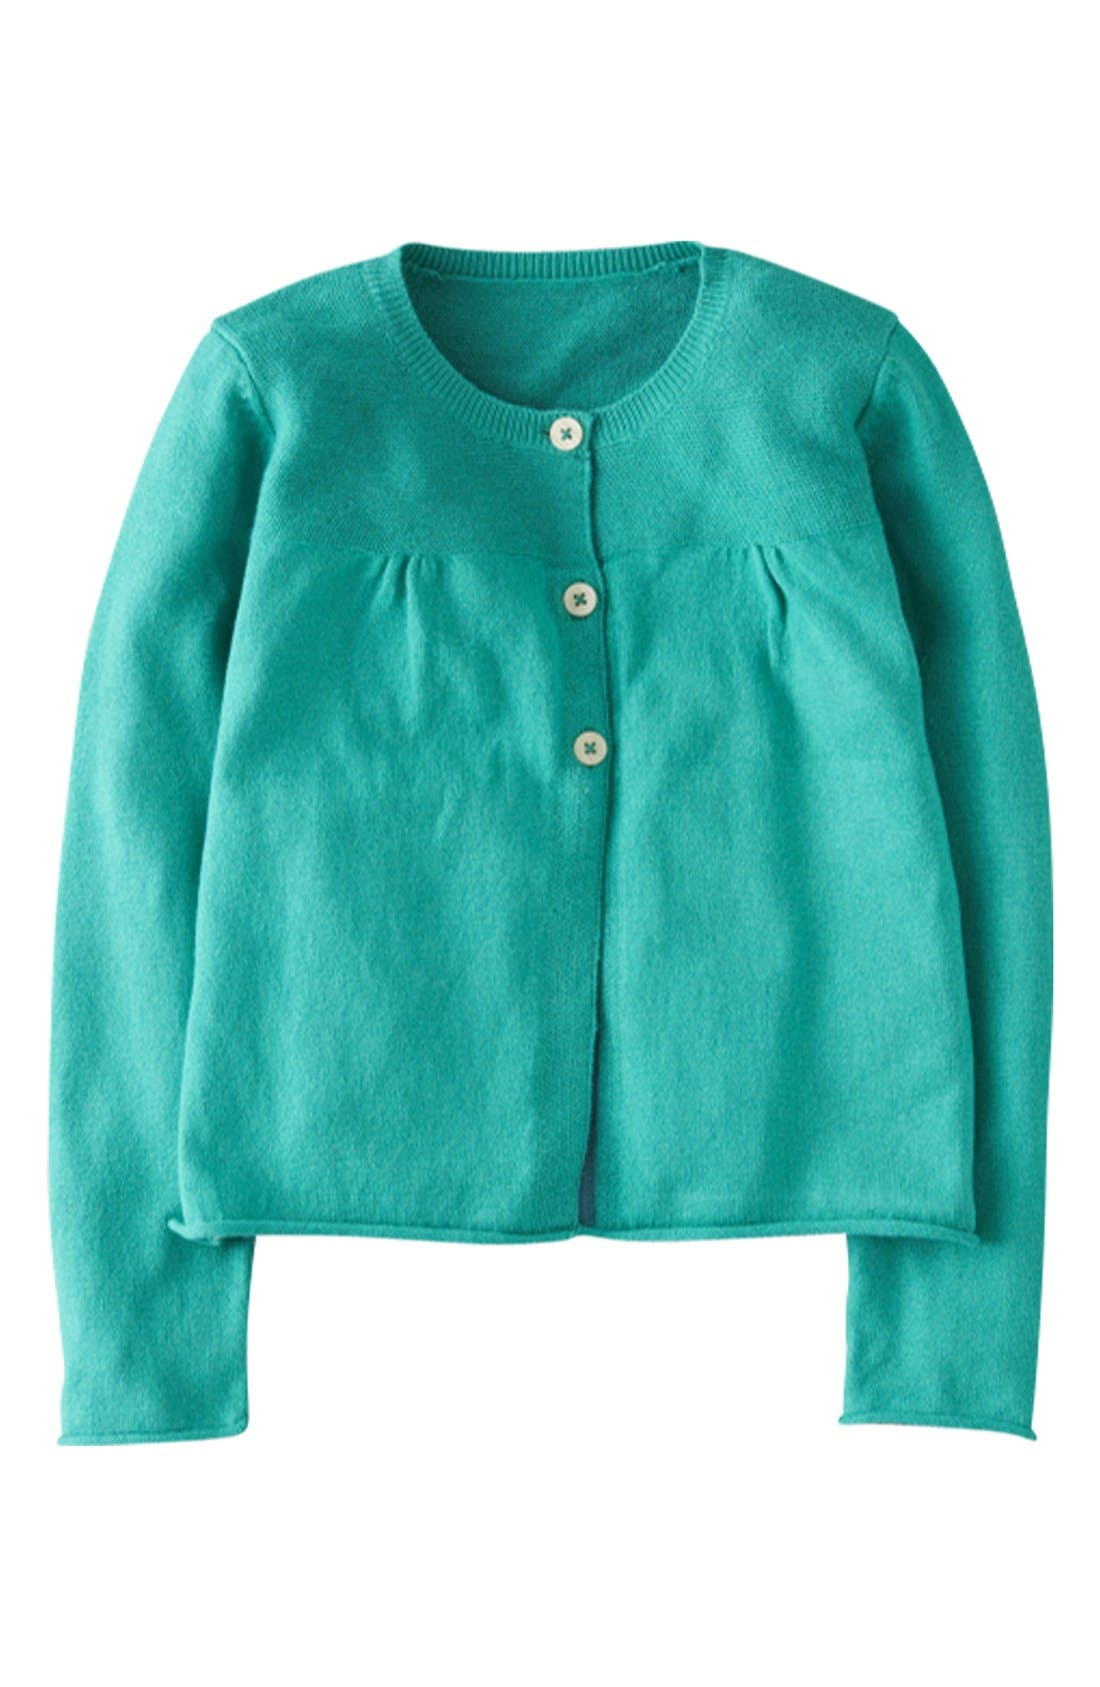 Alternate Image 1 Selected - Mini Boden 'Everyday' Cardigan (Little Girls & Big Girls)